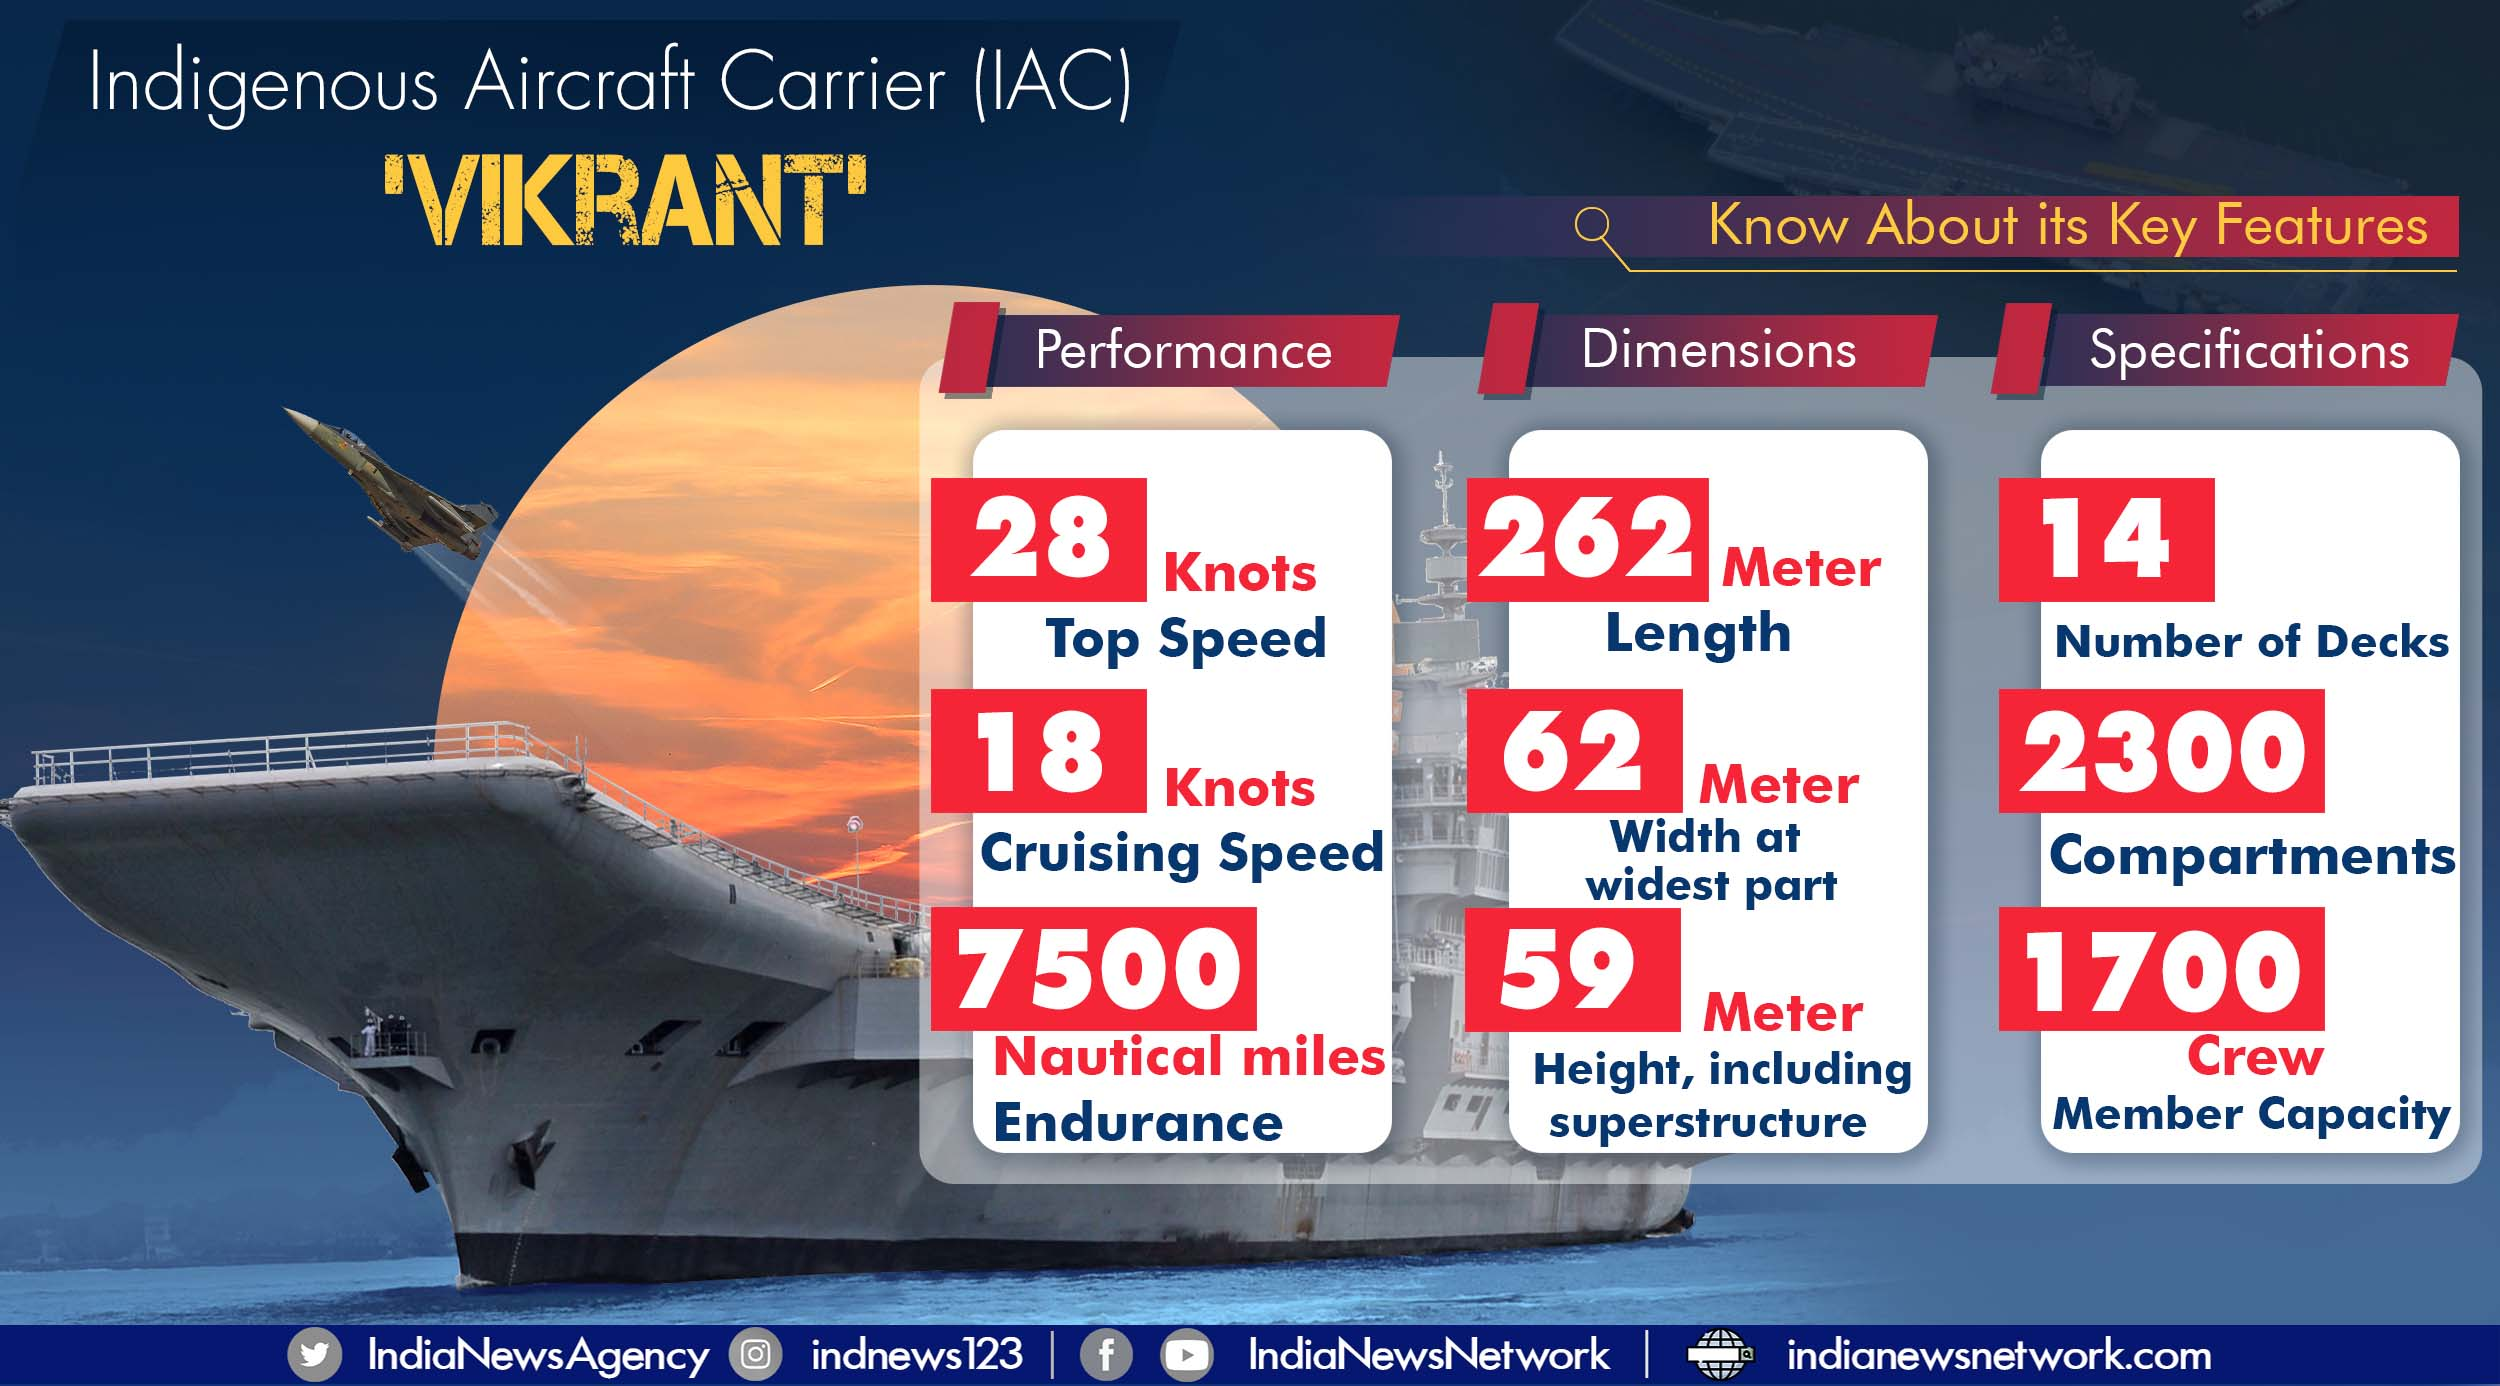 A look at Vikrant, India's Indigenous Aircraft Carrier